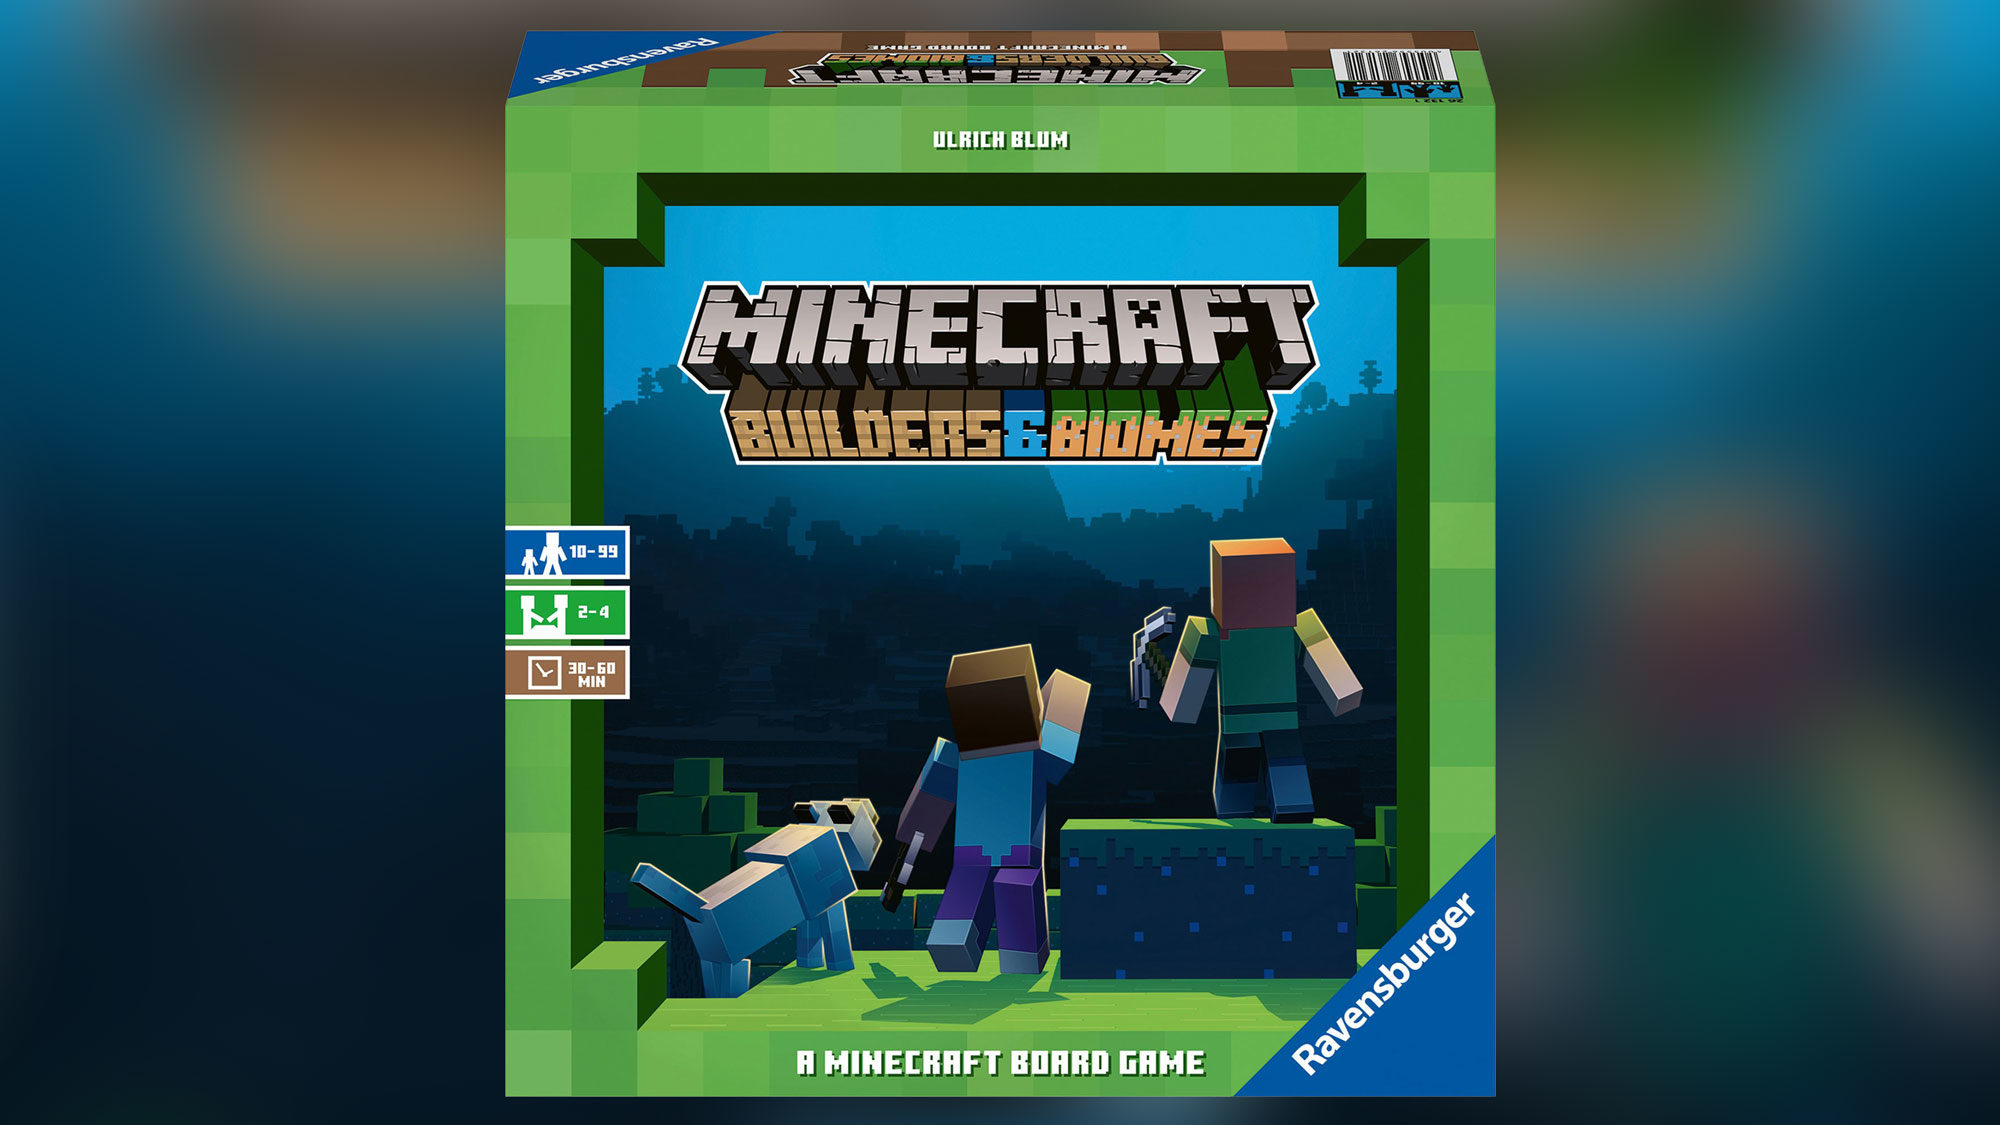 Minecraft Builders & Biomes game box